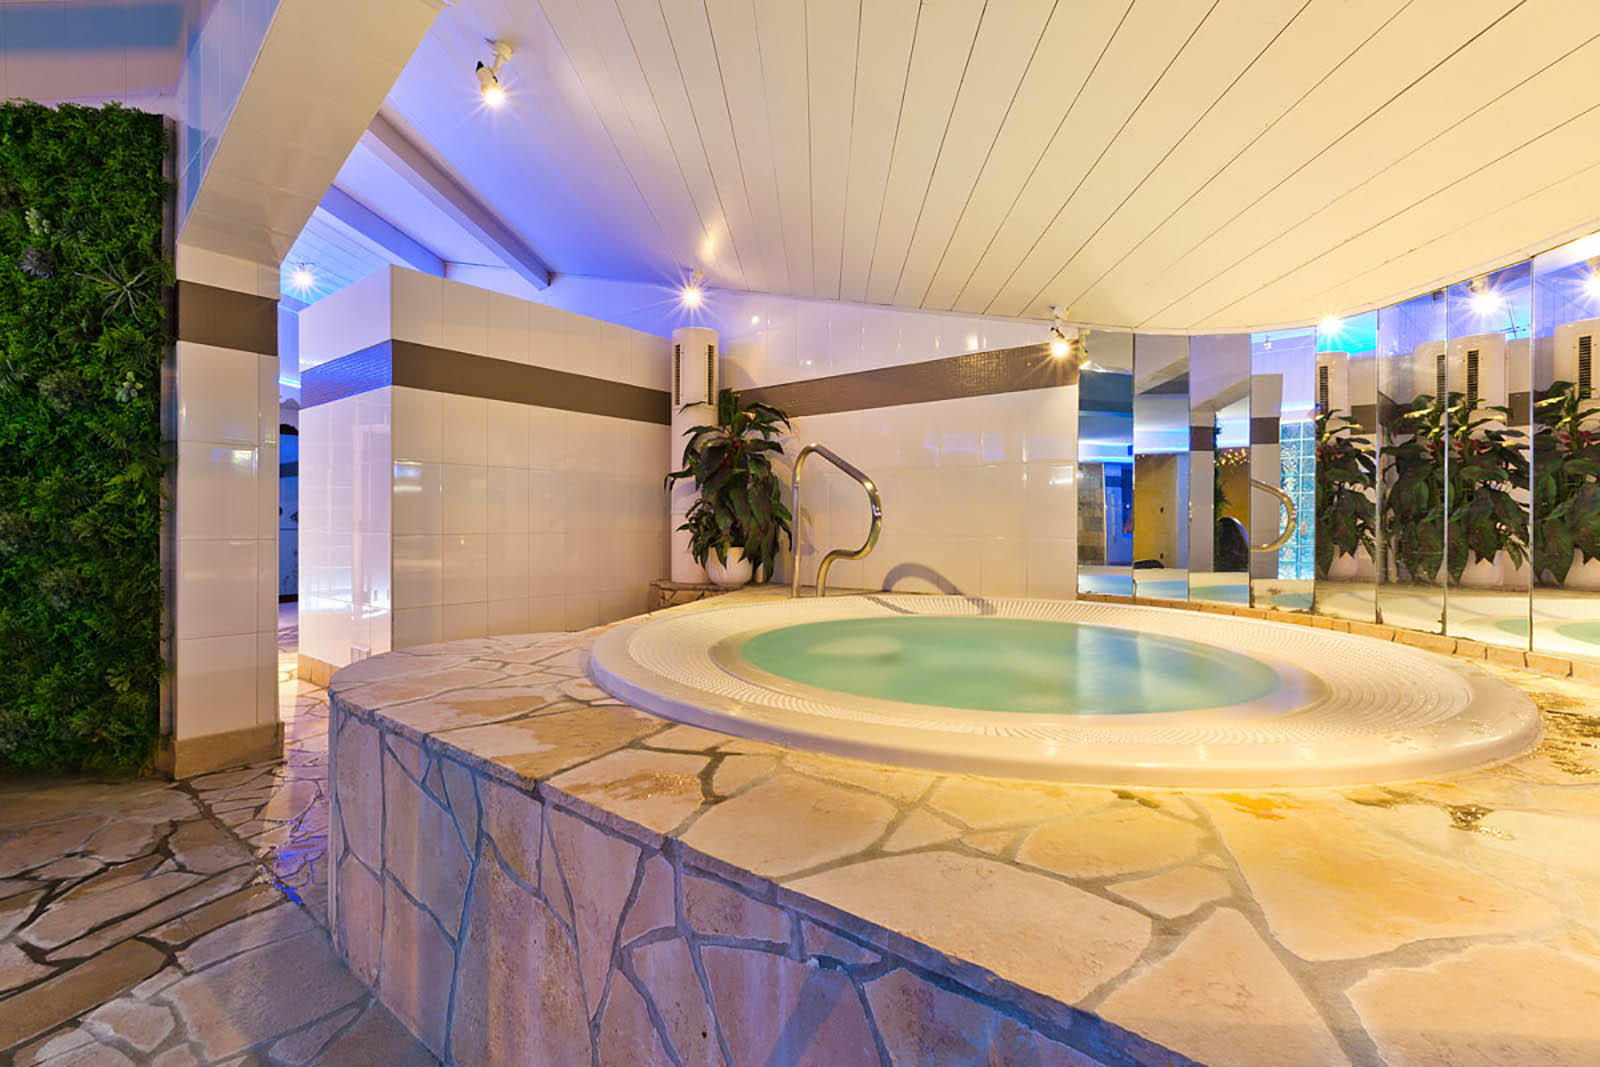 Spa Jacuzzi at Hotel Les Gentianettes, The Originals Relais